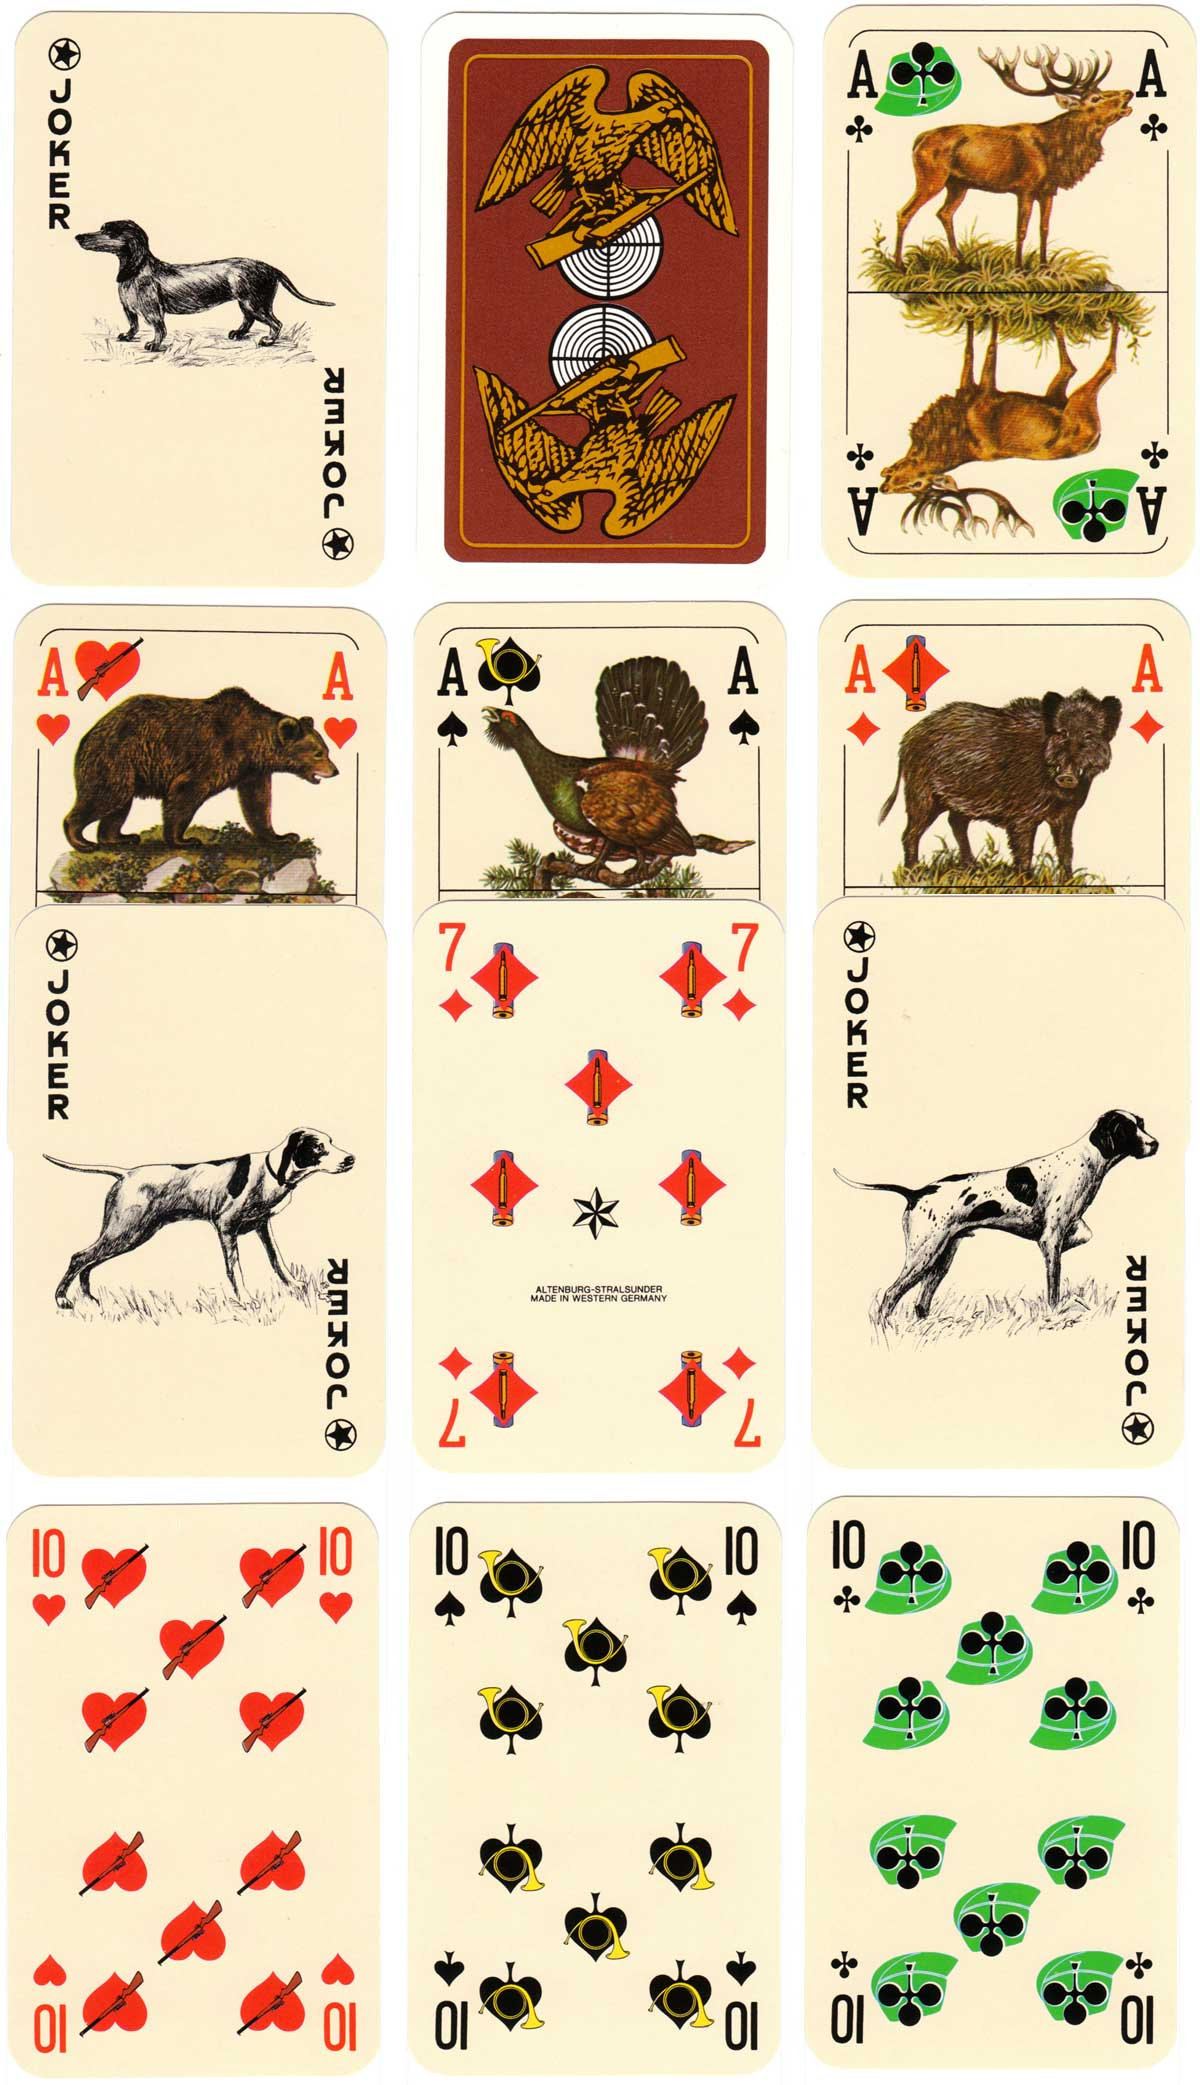 """Hunter's Bridge"" playing cards by ASS depicting animals and associated symbols of hunting, c.1976"